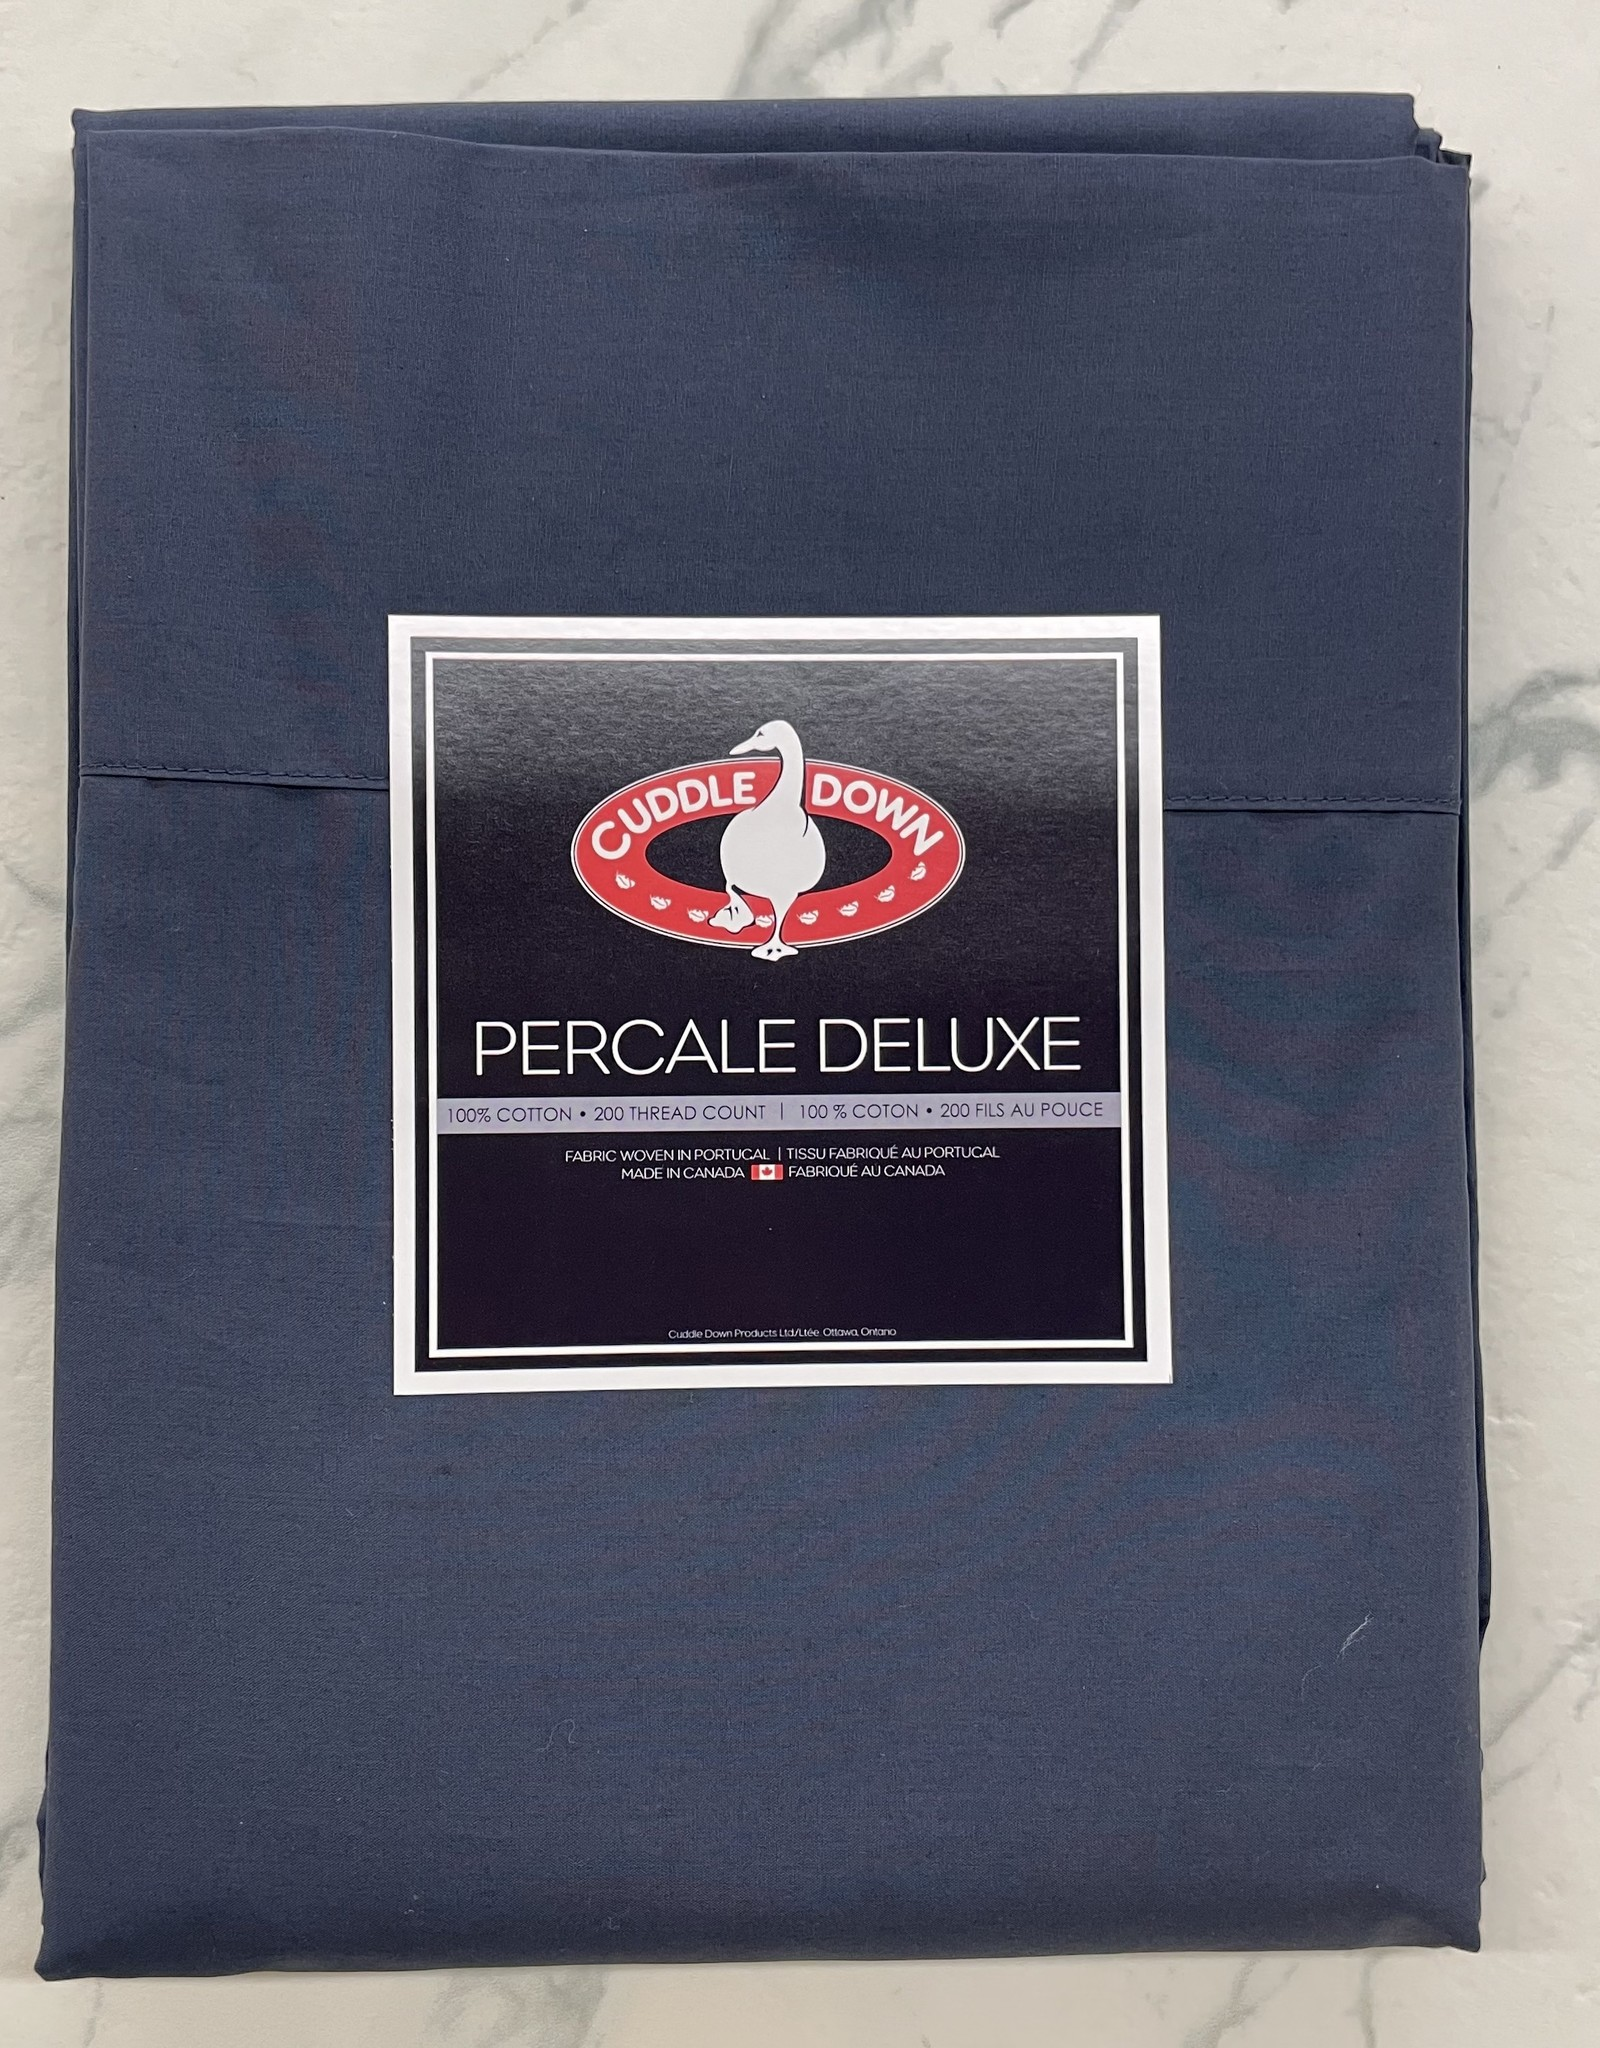 Cuddle Down Sheets Cuddledown Percale Deluxe King Jumbo Fitted Marine ( 49 )